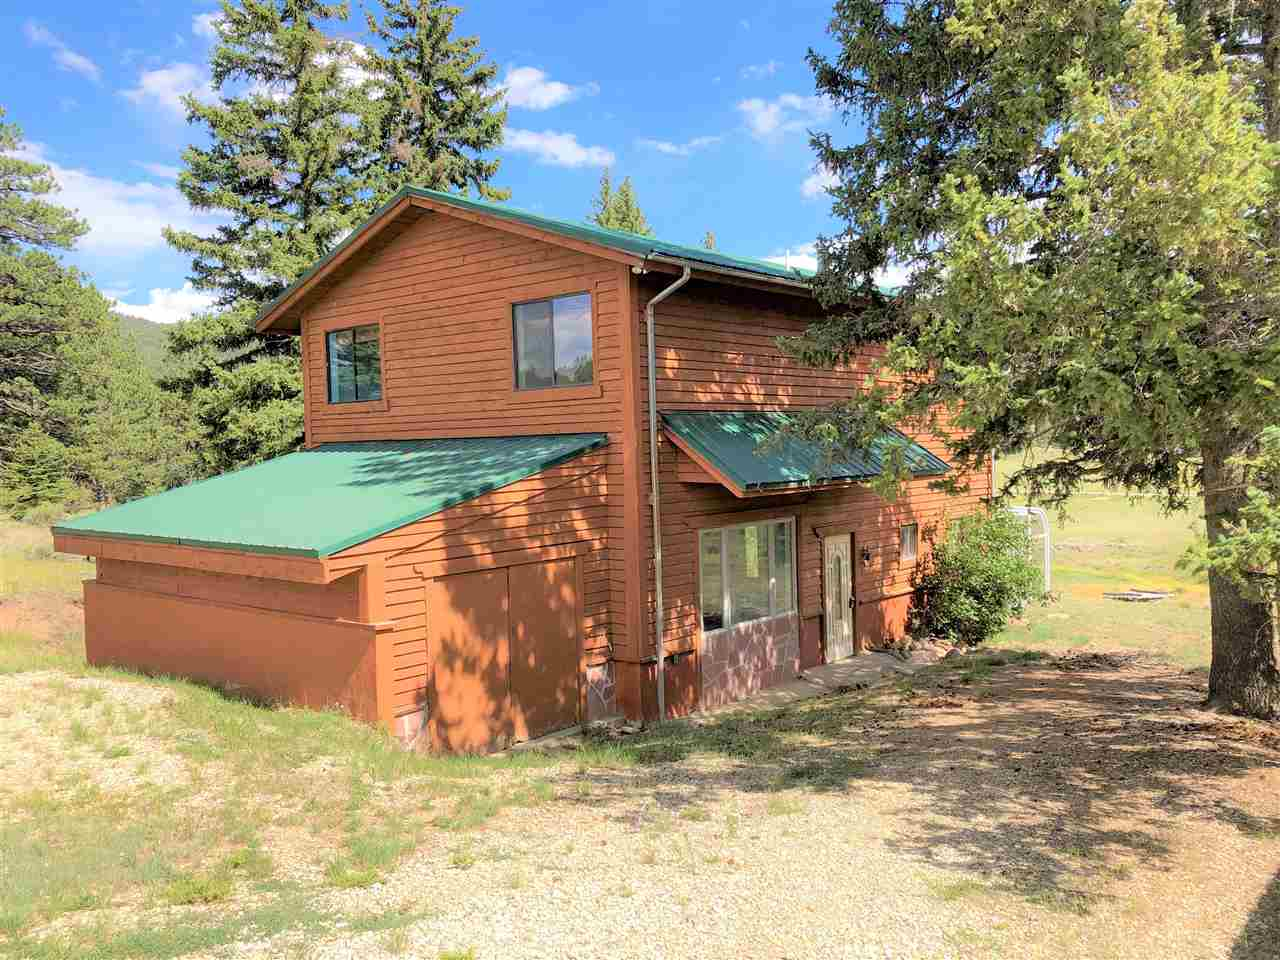 18 Golf Course Road, Taos, NM 87571